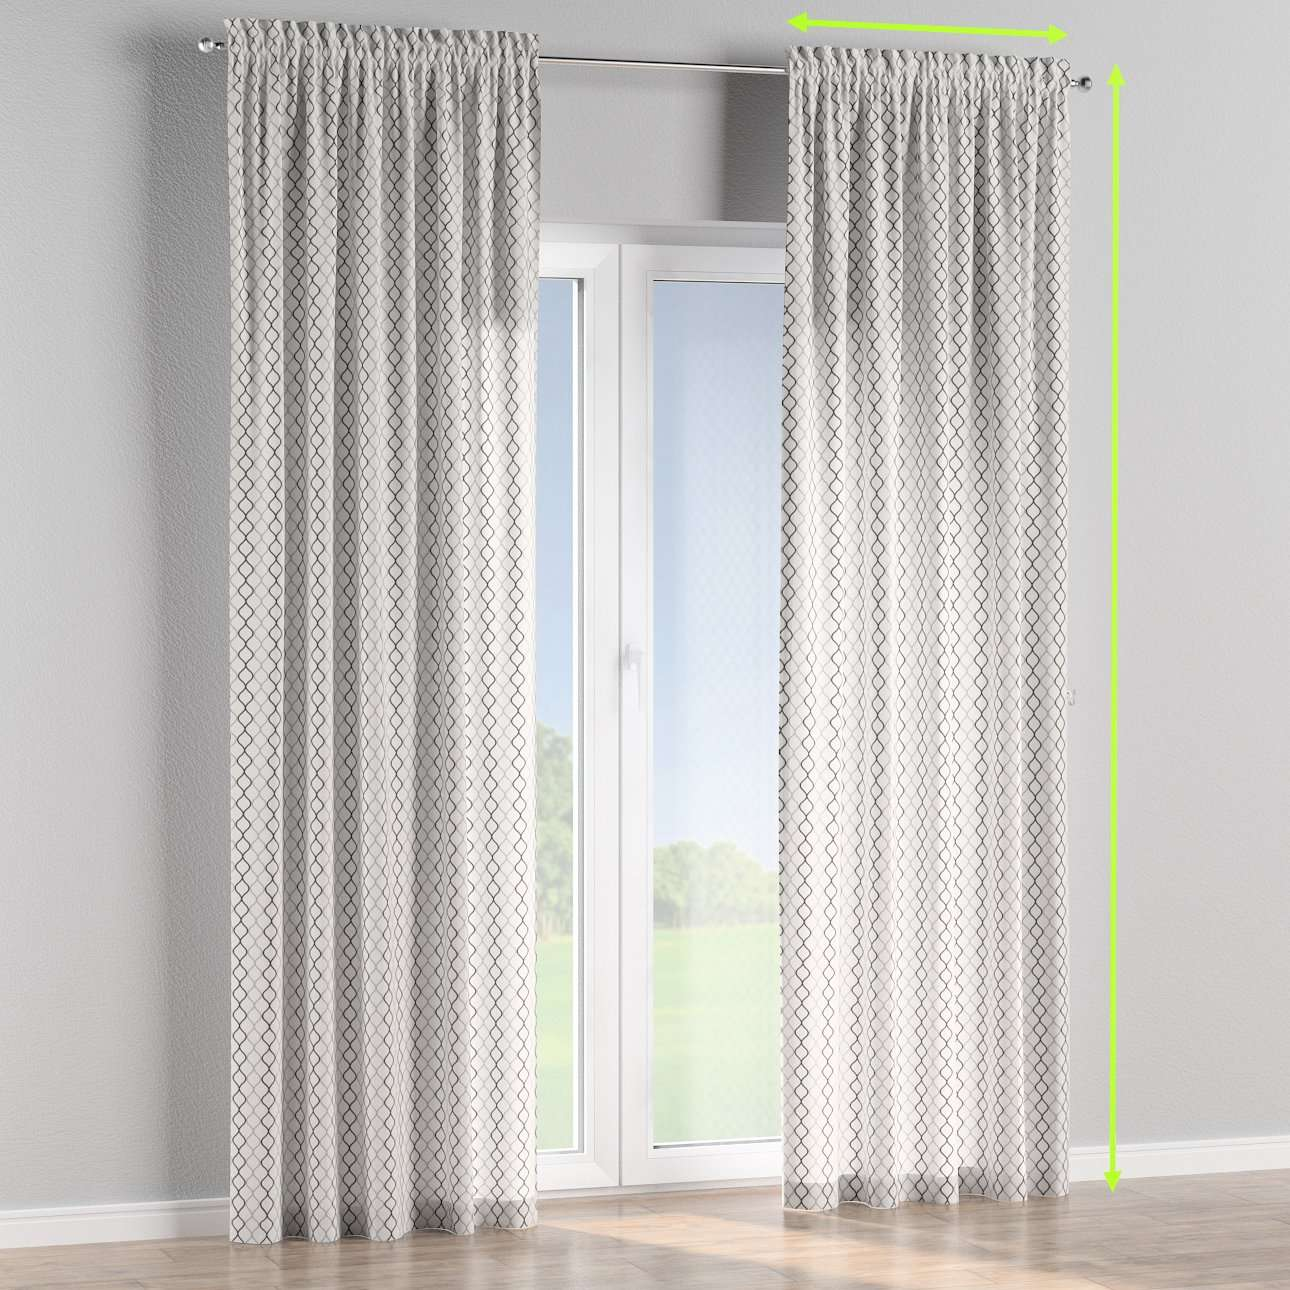 Slot and frill lined curtains in collection Geometric, fabric: 141-46